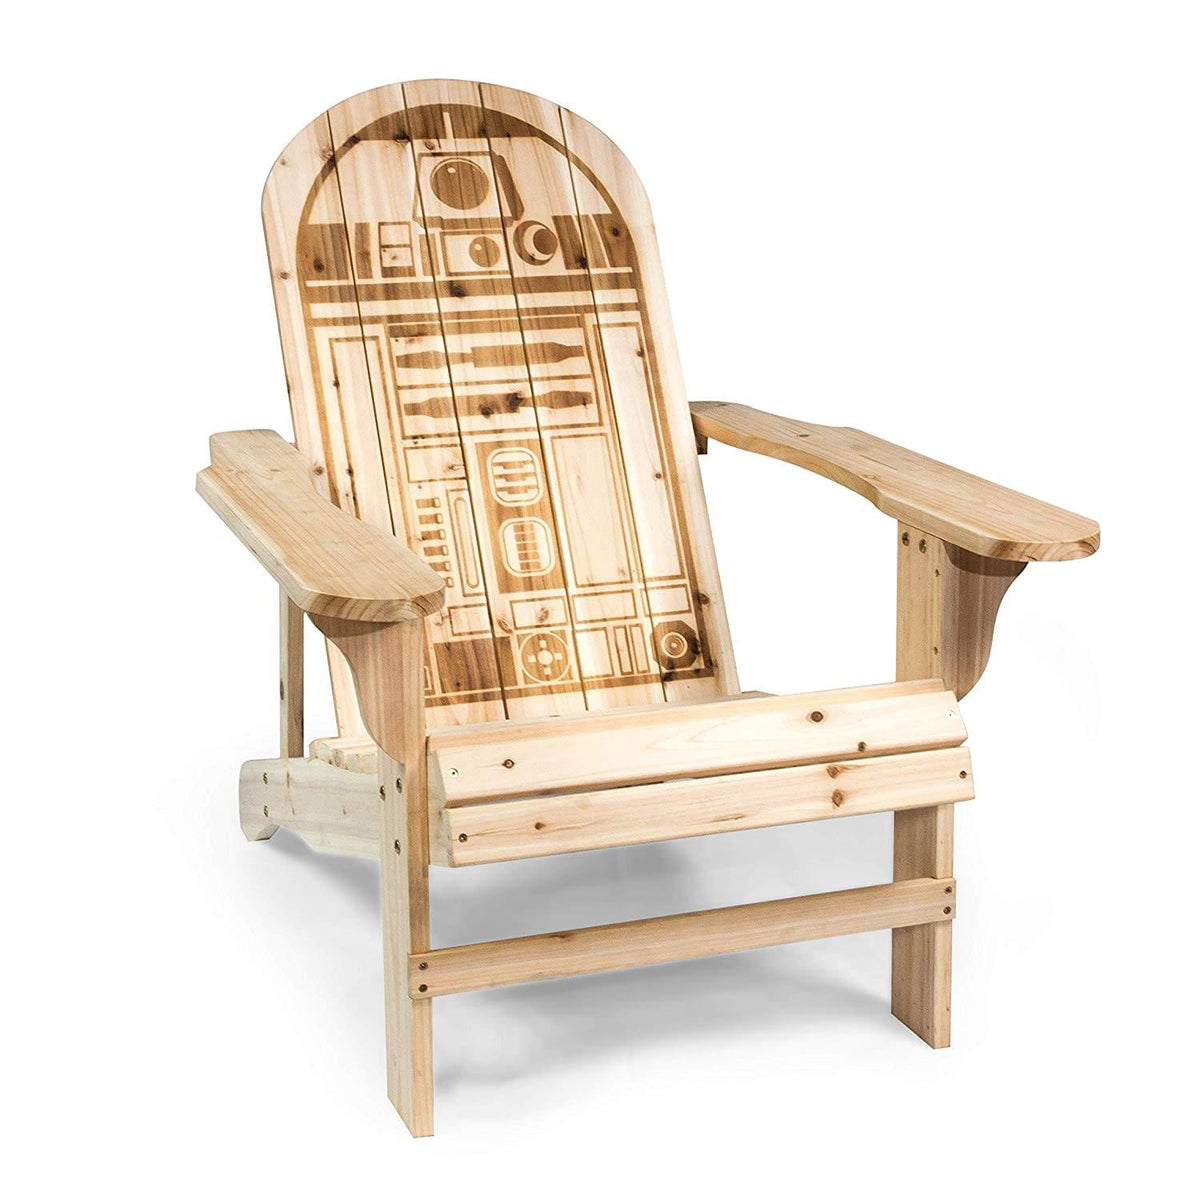 Star Wars R2-D2 Adirondack Wooden Outdoor Chair